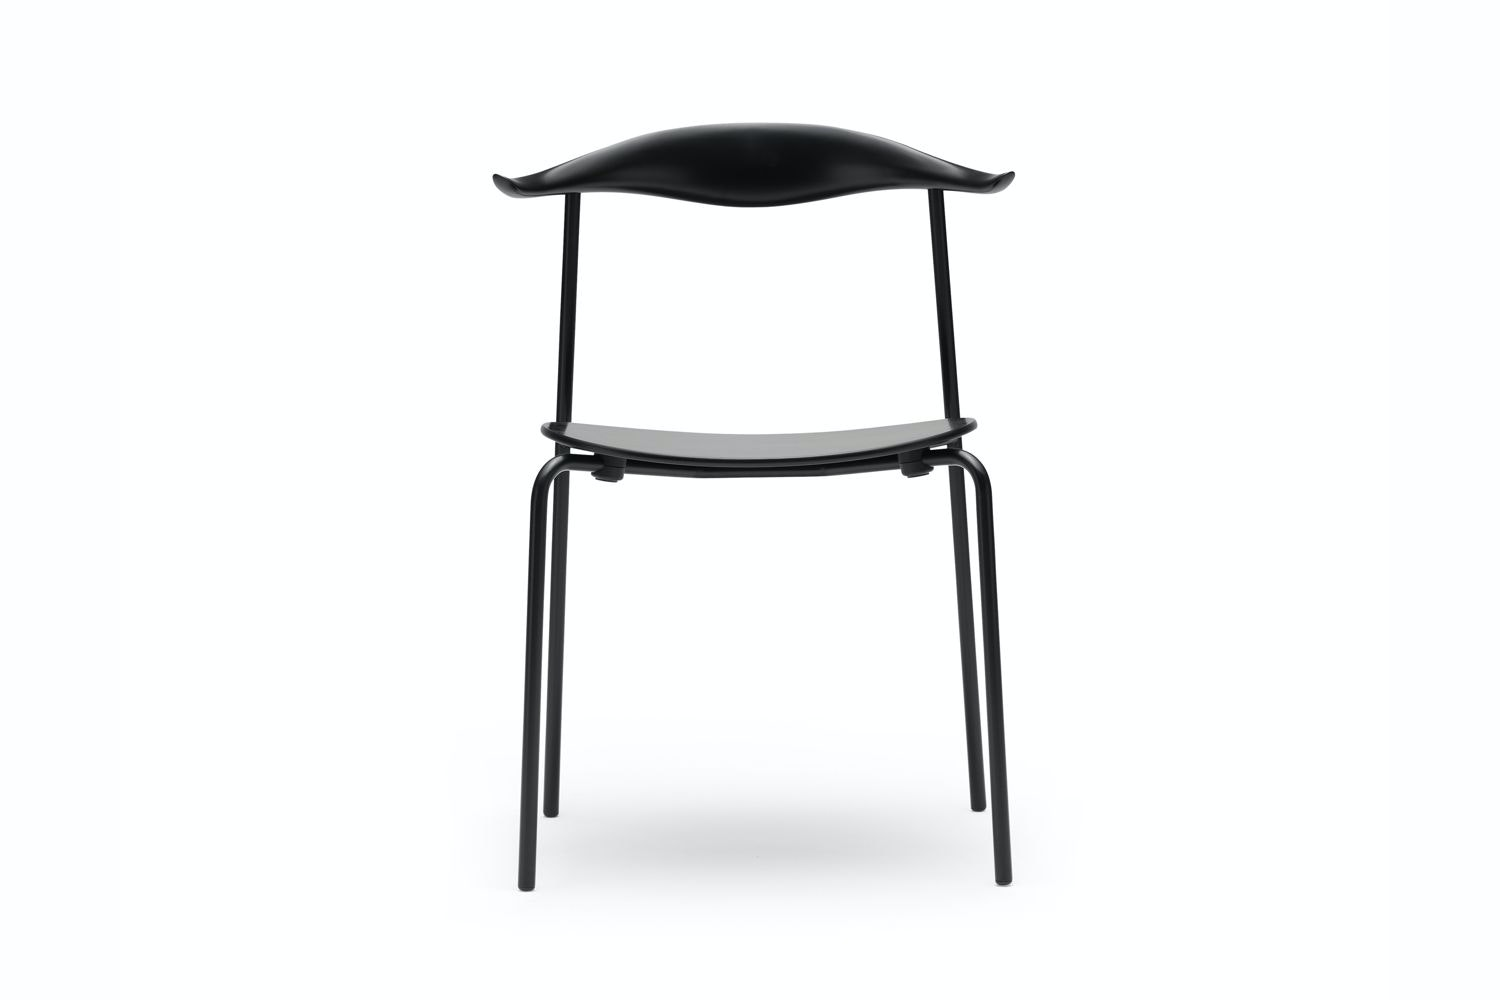 CH88T by Hans J. Wegner for Carl Hansen & Son